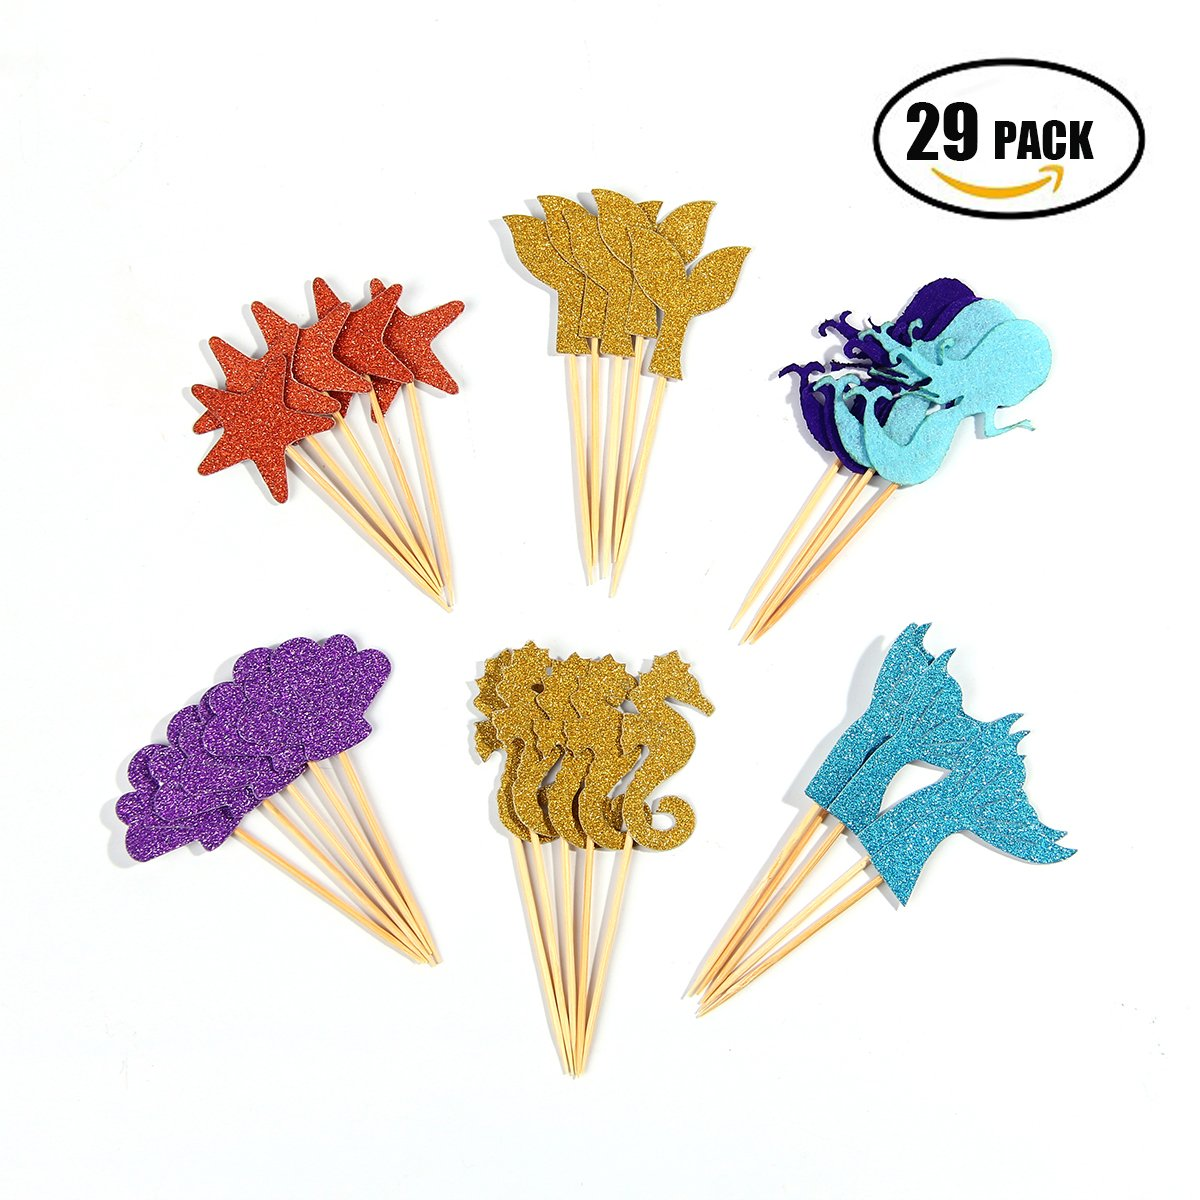 Mermaid Cupcake Topper, Food Picks Girls Birthday Party Decor Cupcake Party Picks, 29